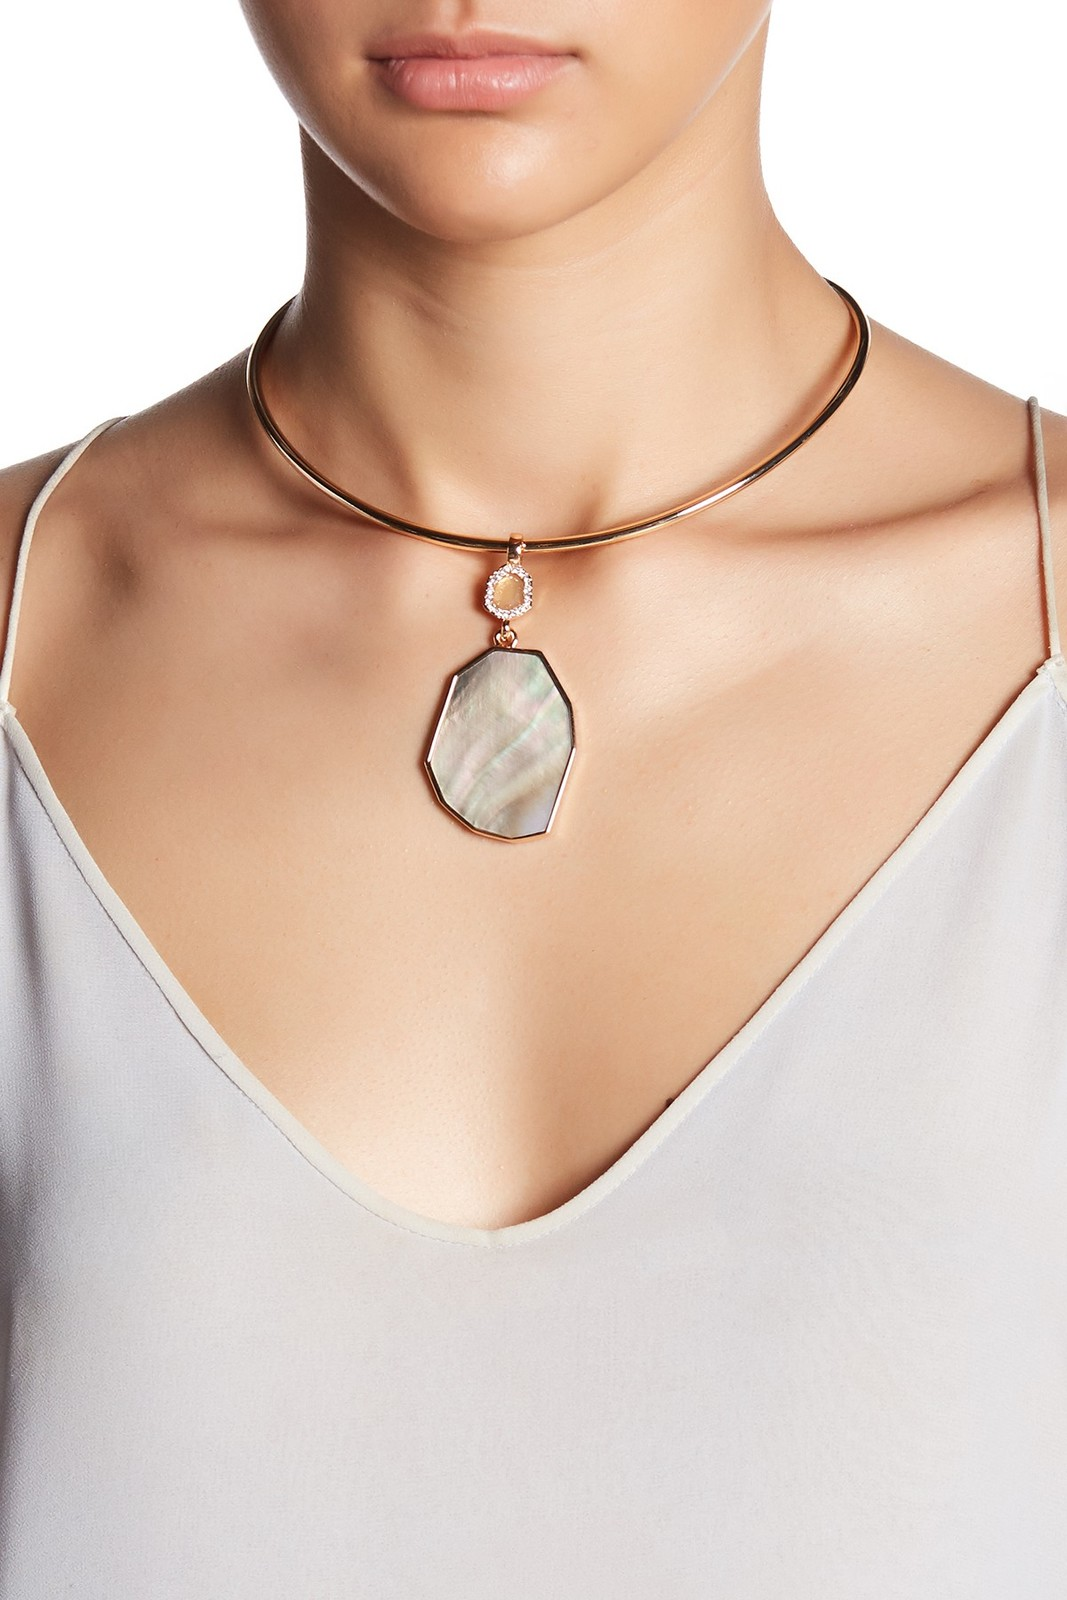 Primary image for Vince Camuto Shell Collar Necklace